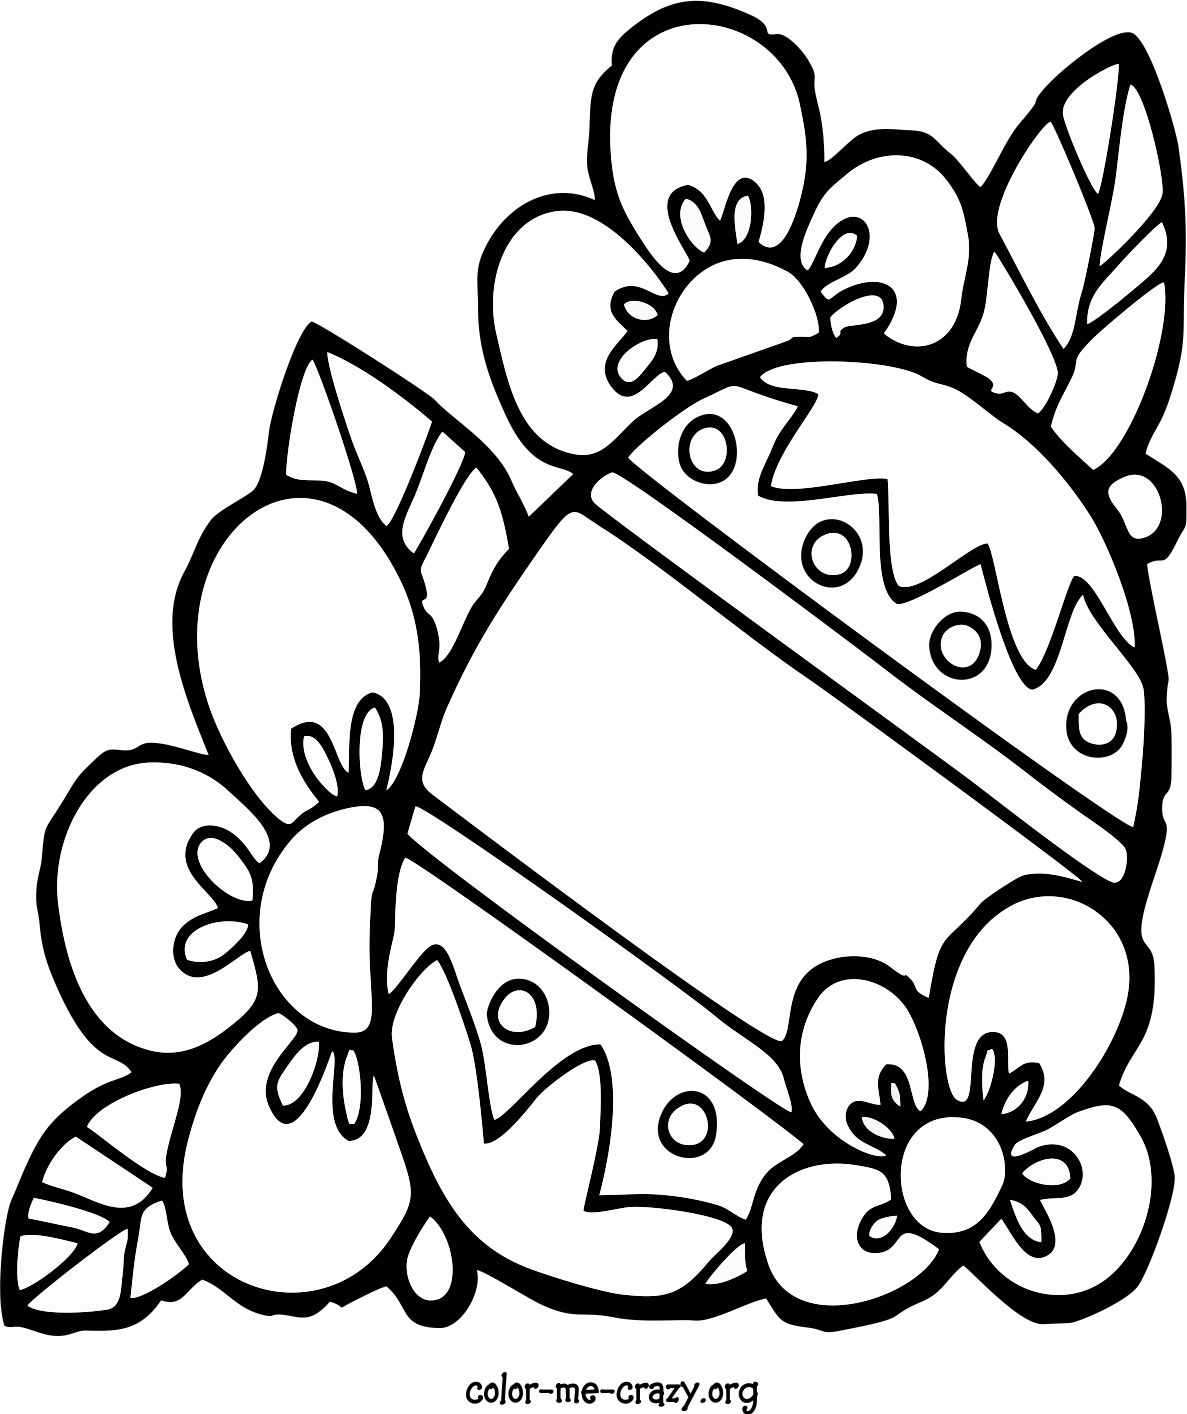 coloring pages easter colormecrazyorg easter coloring pages pages coloring easter